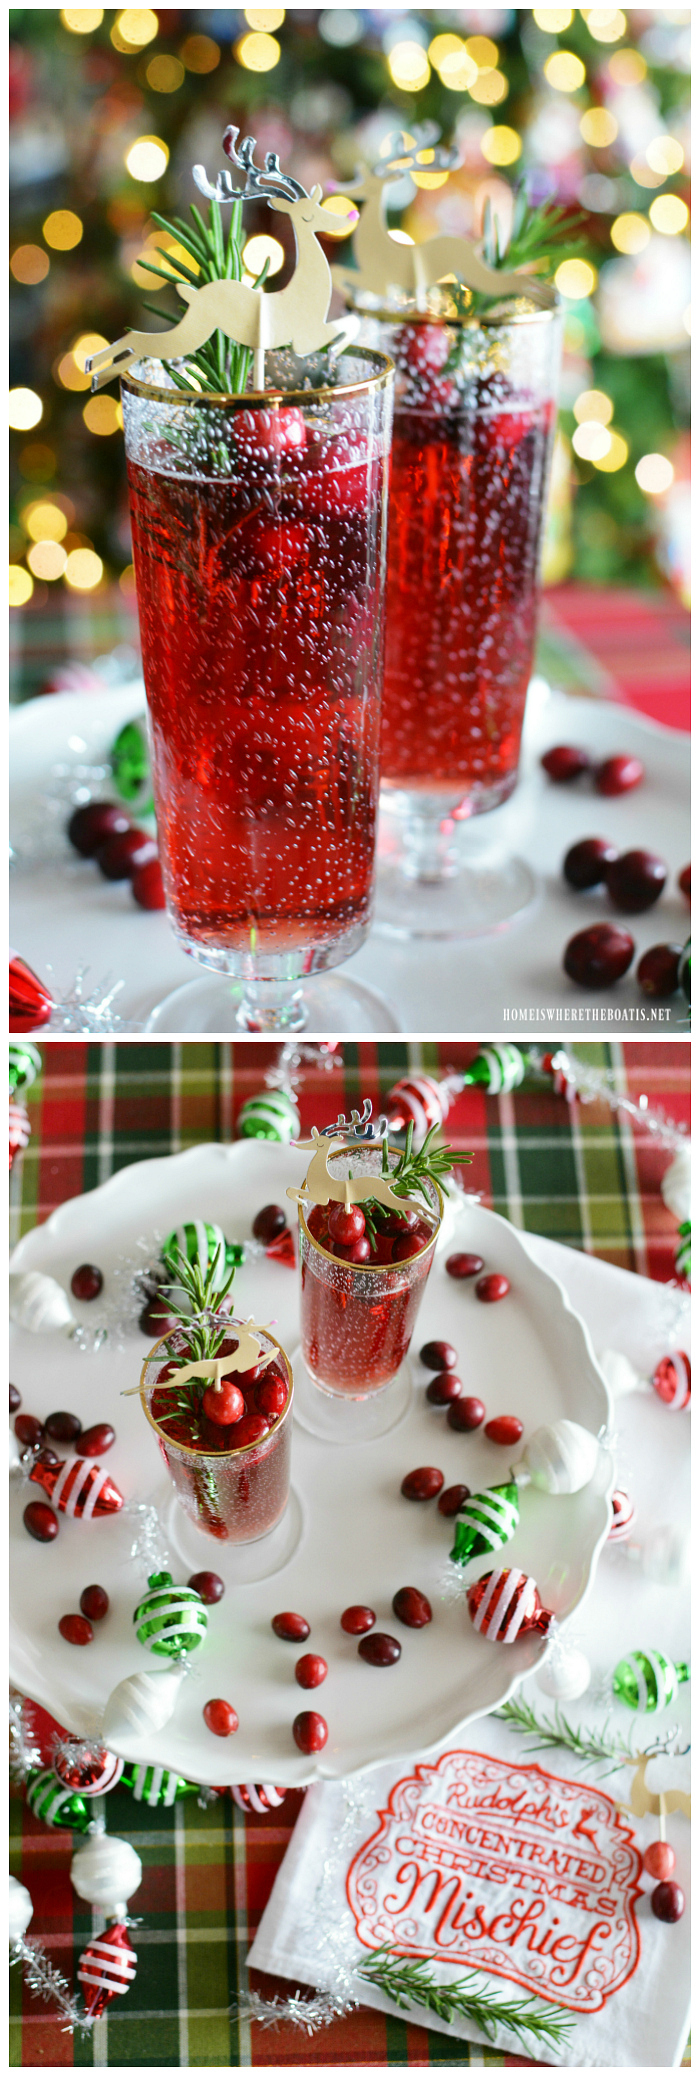 Rudolph's Concentrated Christmas Mischief Cocktail! | homeiswheretheboatis.net #Christmas #cocktail #cranberry #champagne #rosemary